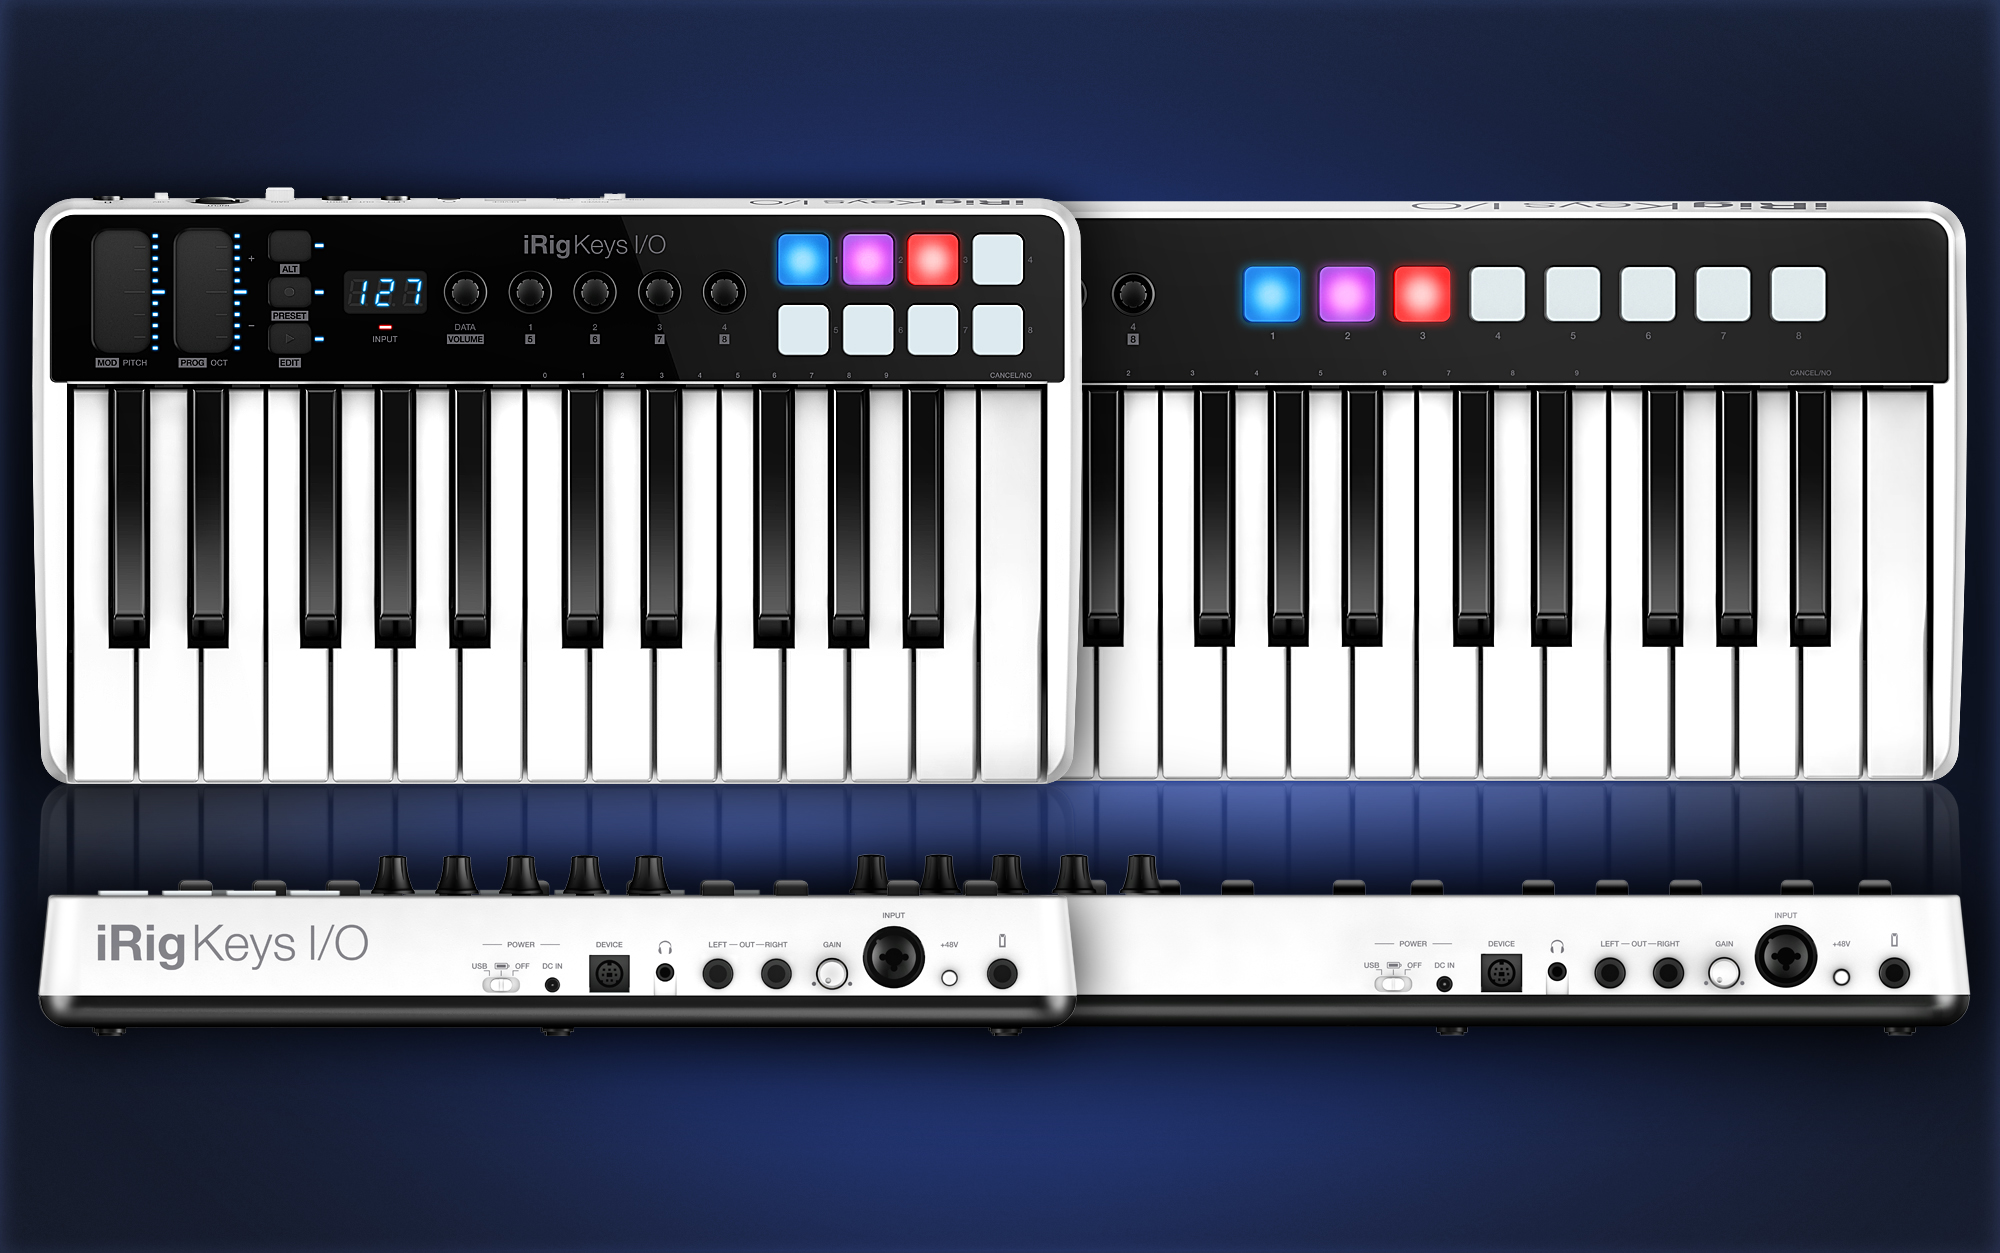 irig keys i o is an audio interface and midi keyboard controller for 199. Black Bedroom Furniture Sets. Home Design Ideas